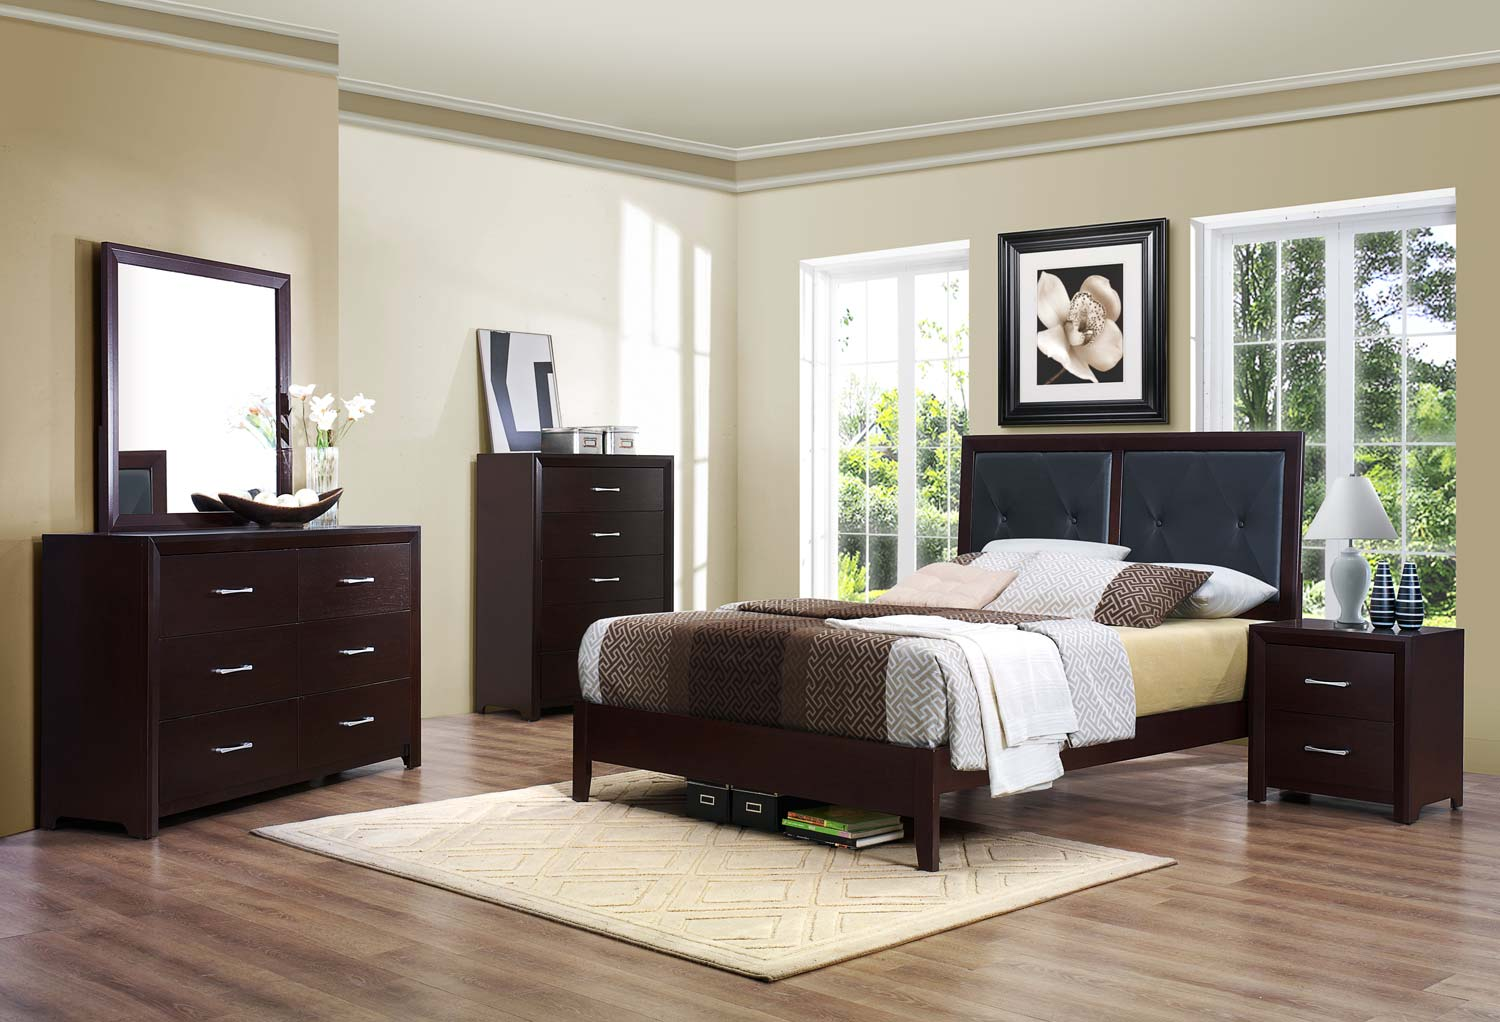 Homelegance Edina Bedroom Set - Brown Espresso B2145-BED-SET ...